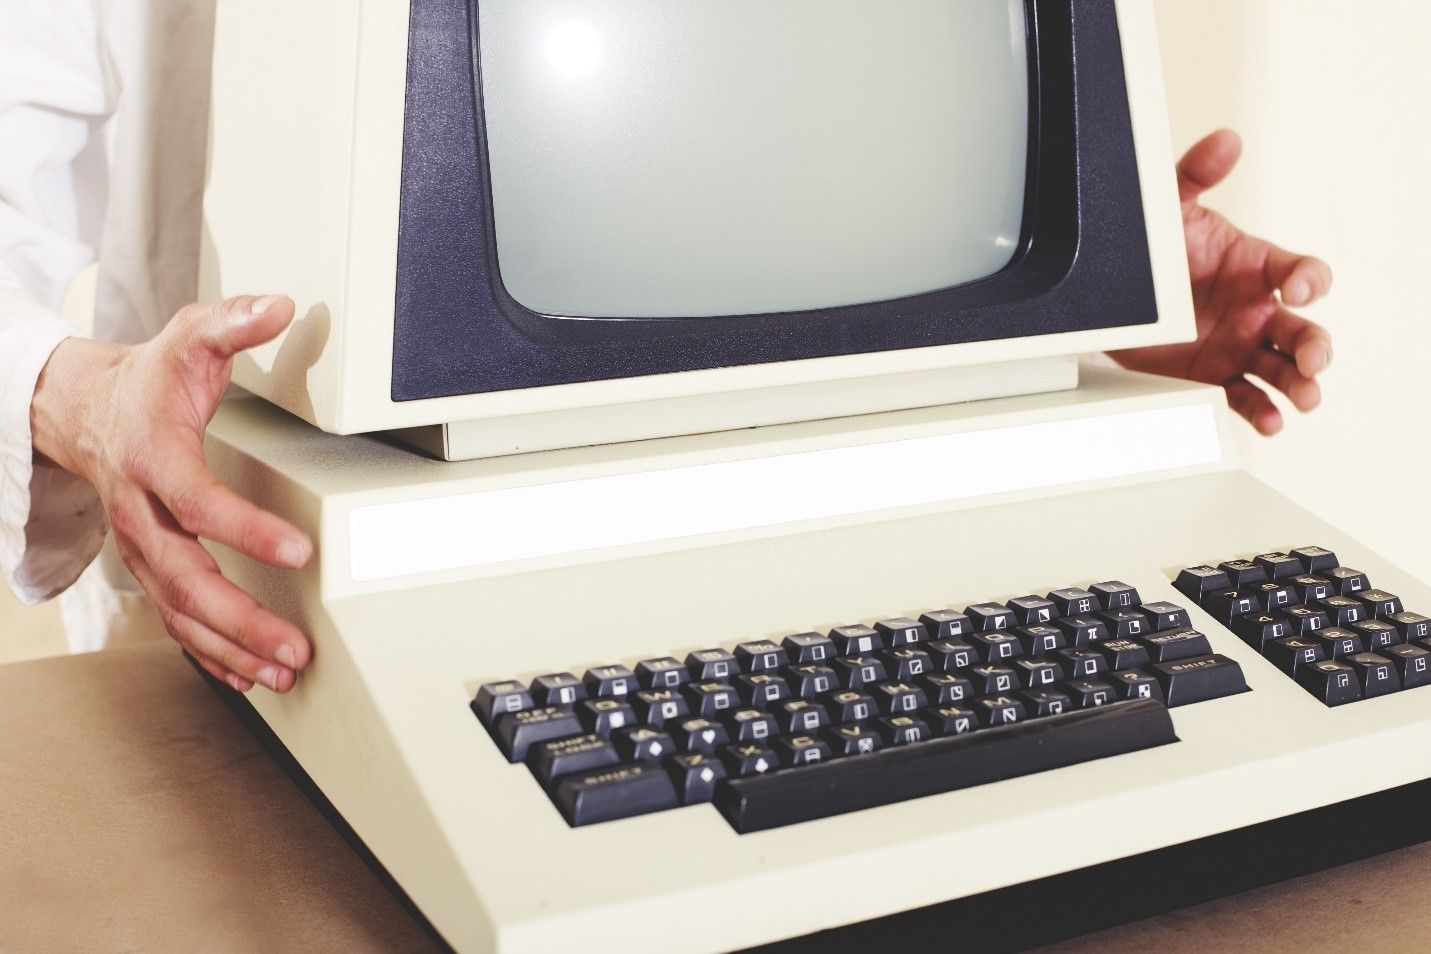 Retro Computer Used in Old Labs